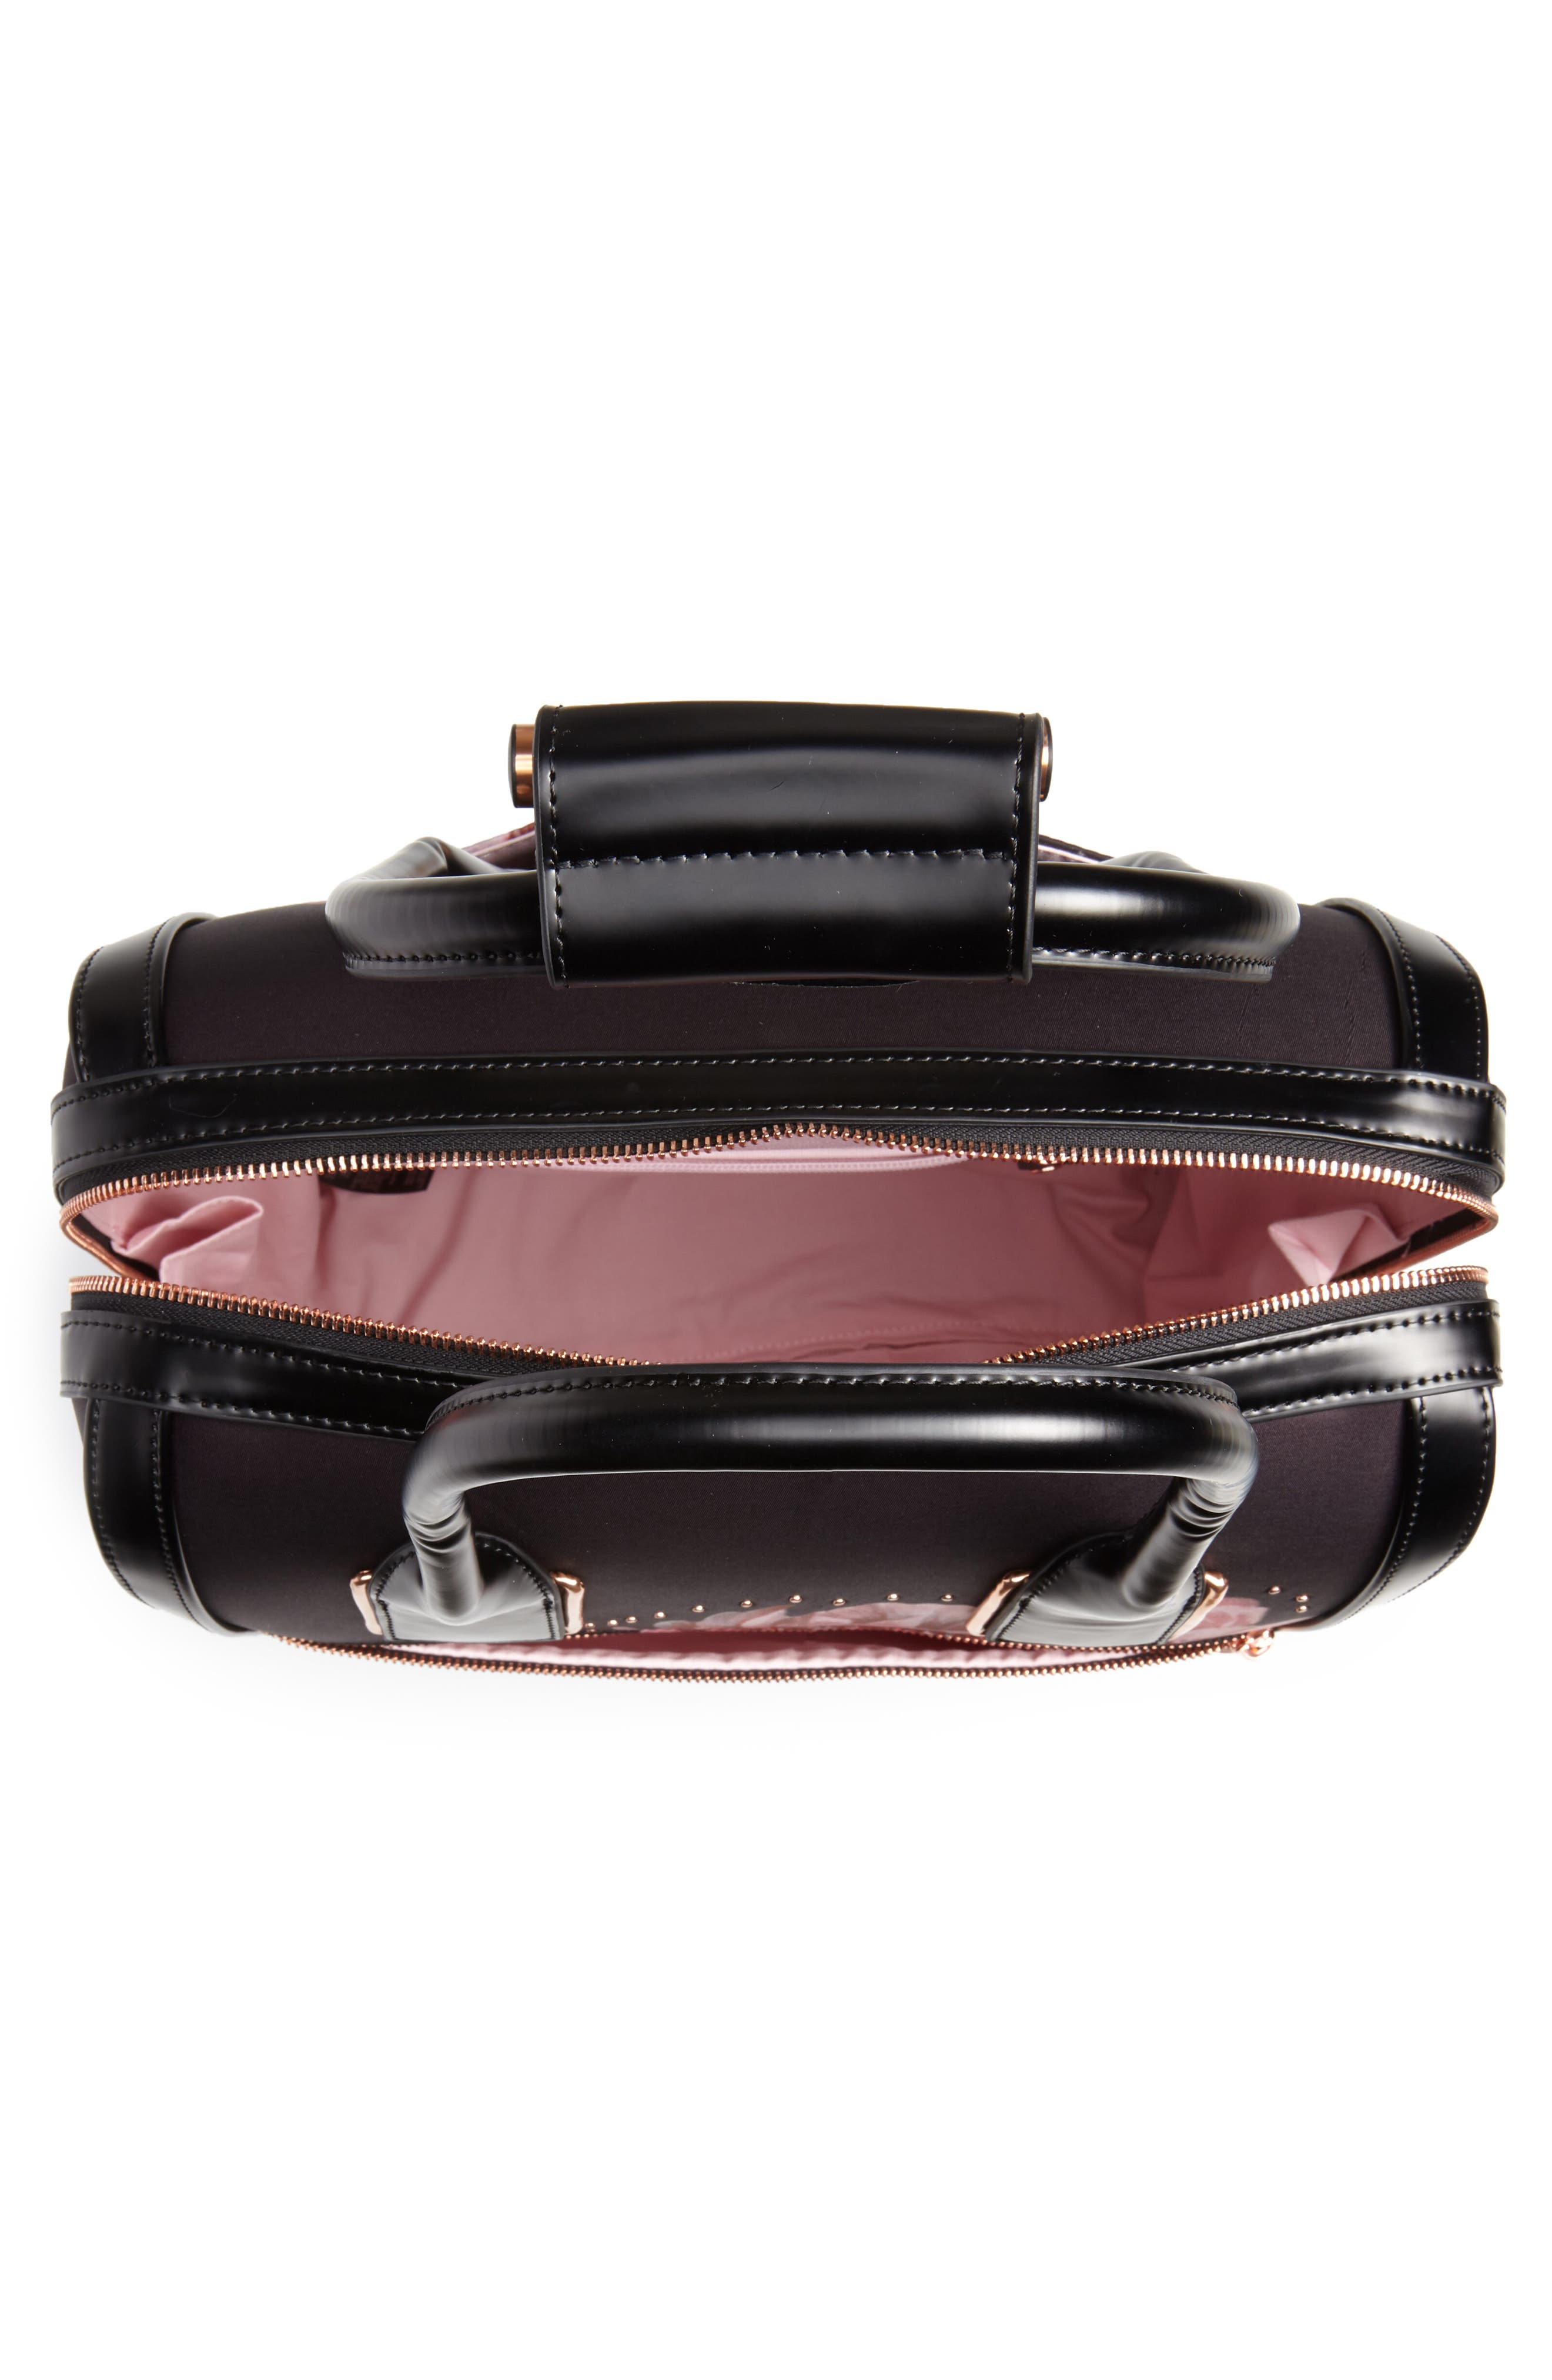 Tranquility Rolling Faux Leather Travel Bag,                             Alternate thumbnail 2, color,                             001